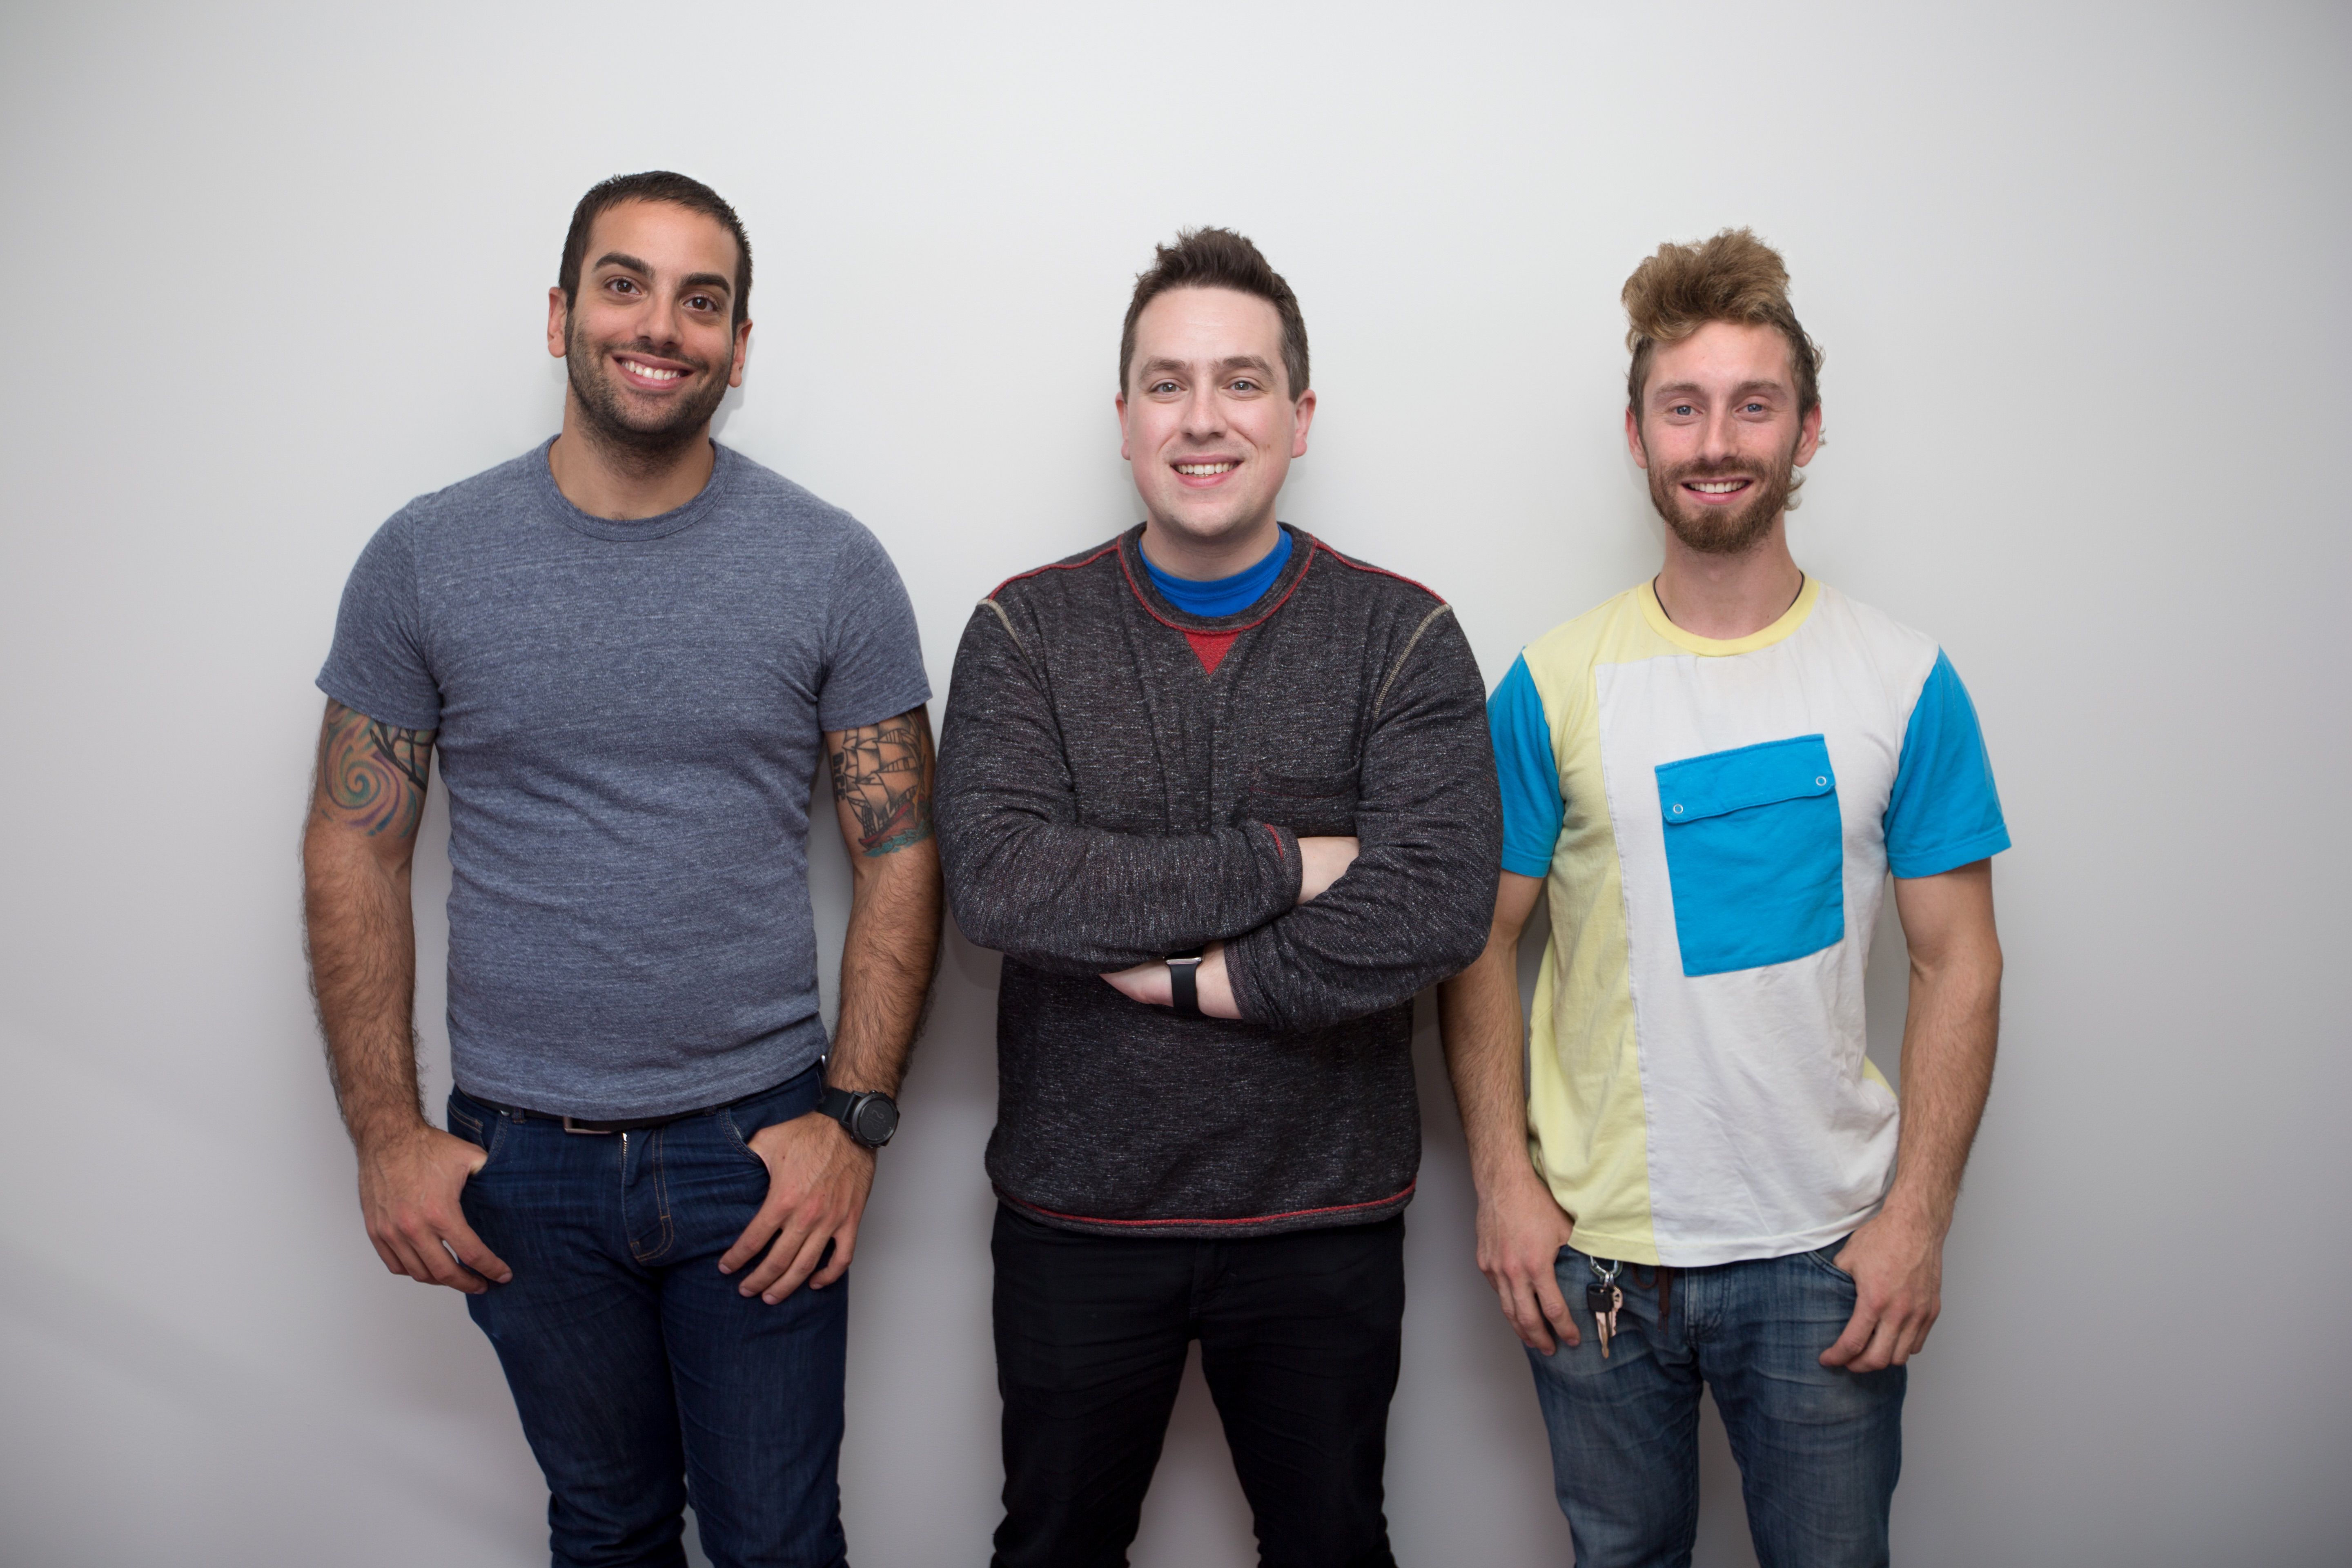 Kolide raises $8M to turn application and device management into a